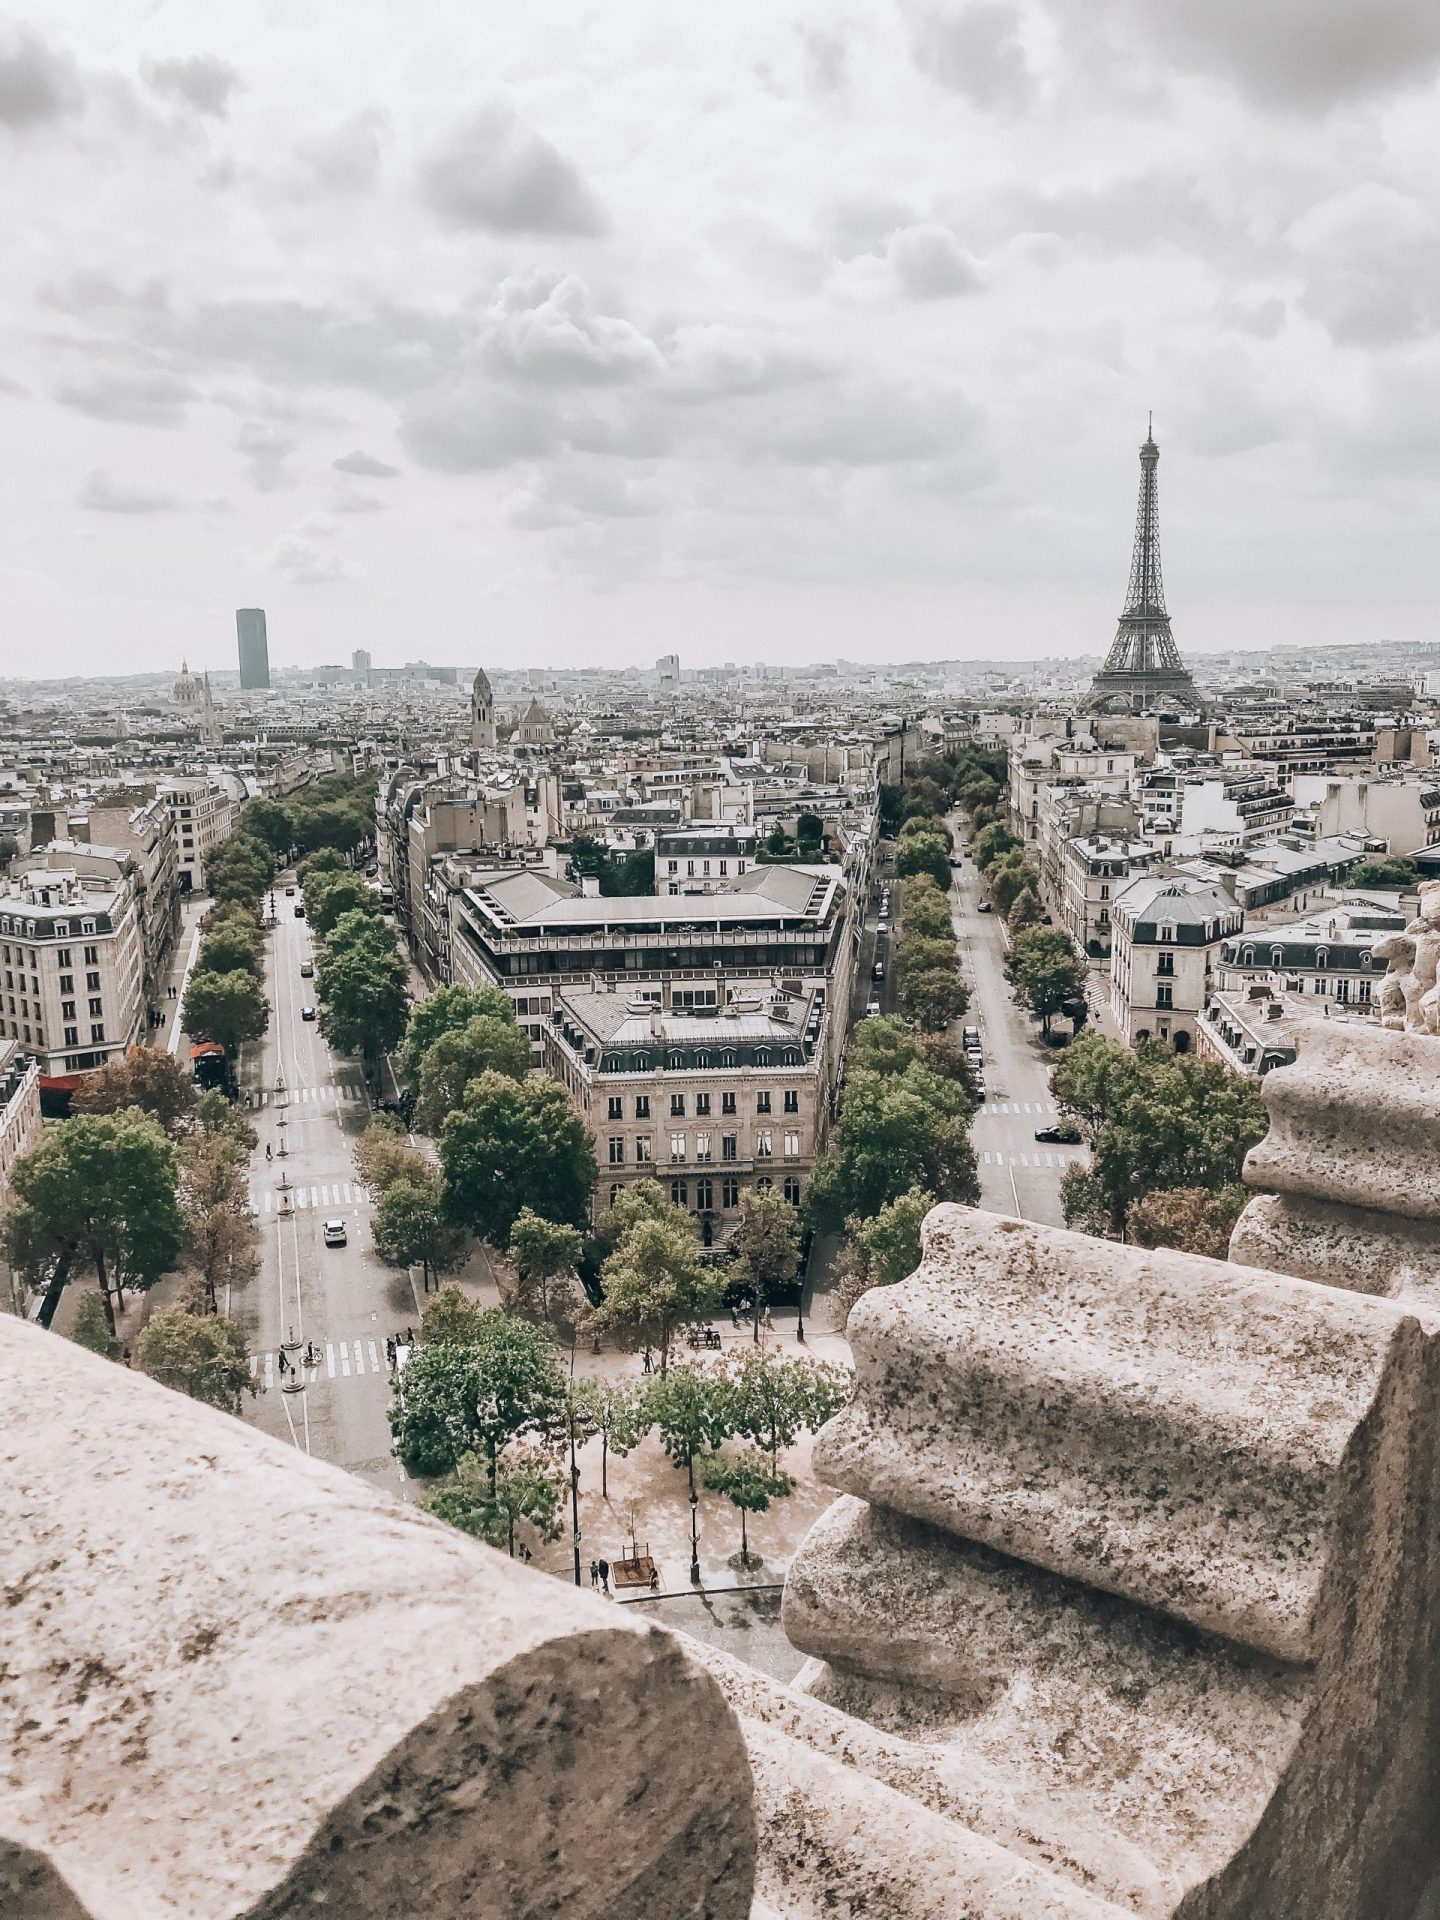 the view over Paris from the Arc de Triomph on a cloomy day, the Eiffel Tower in the distance, travel